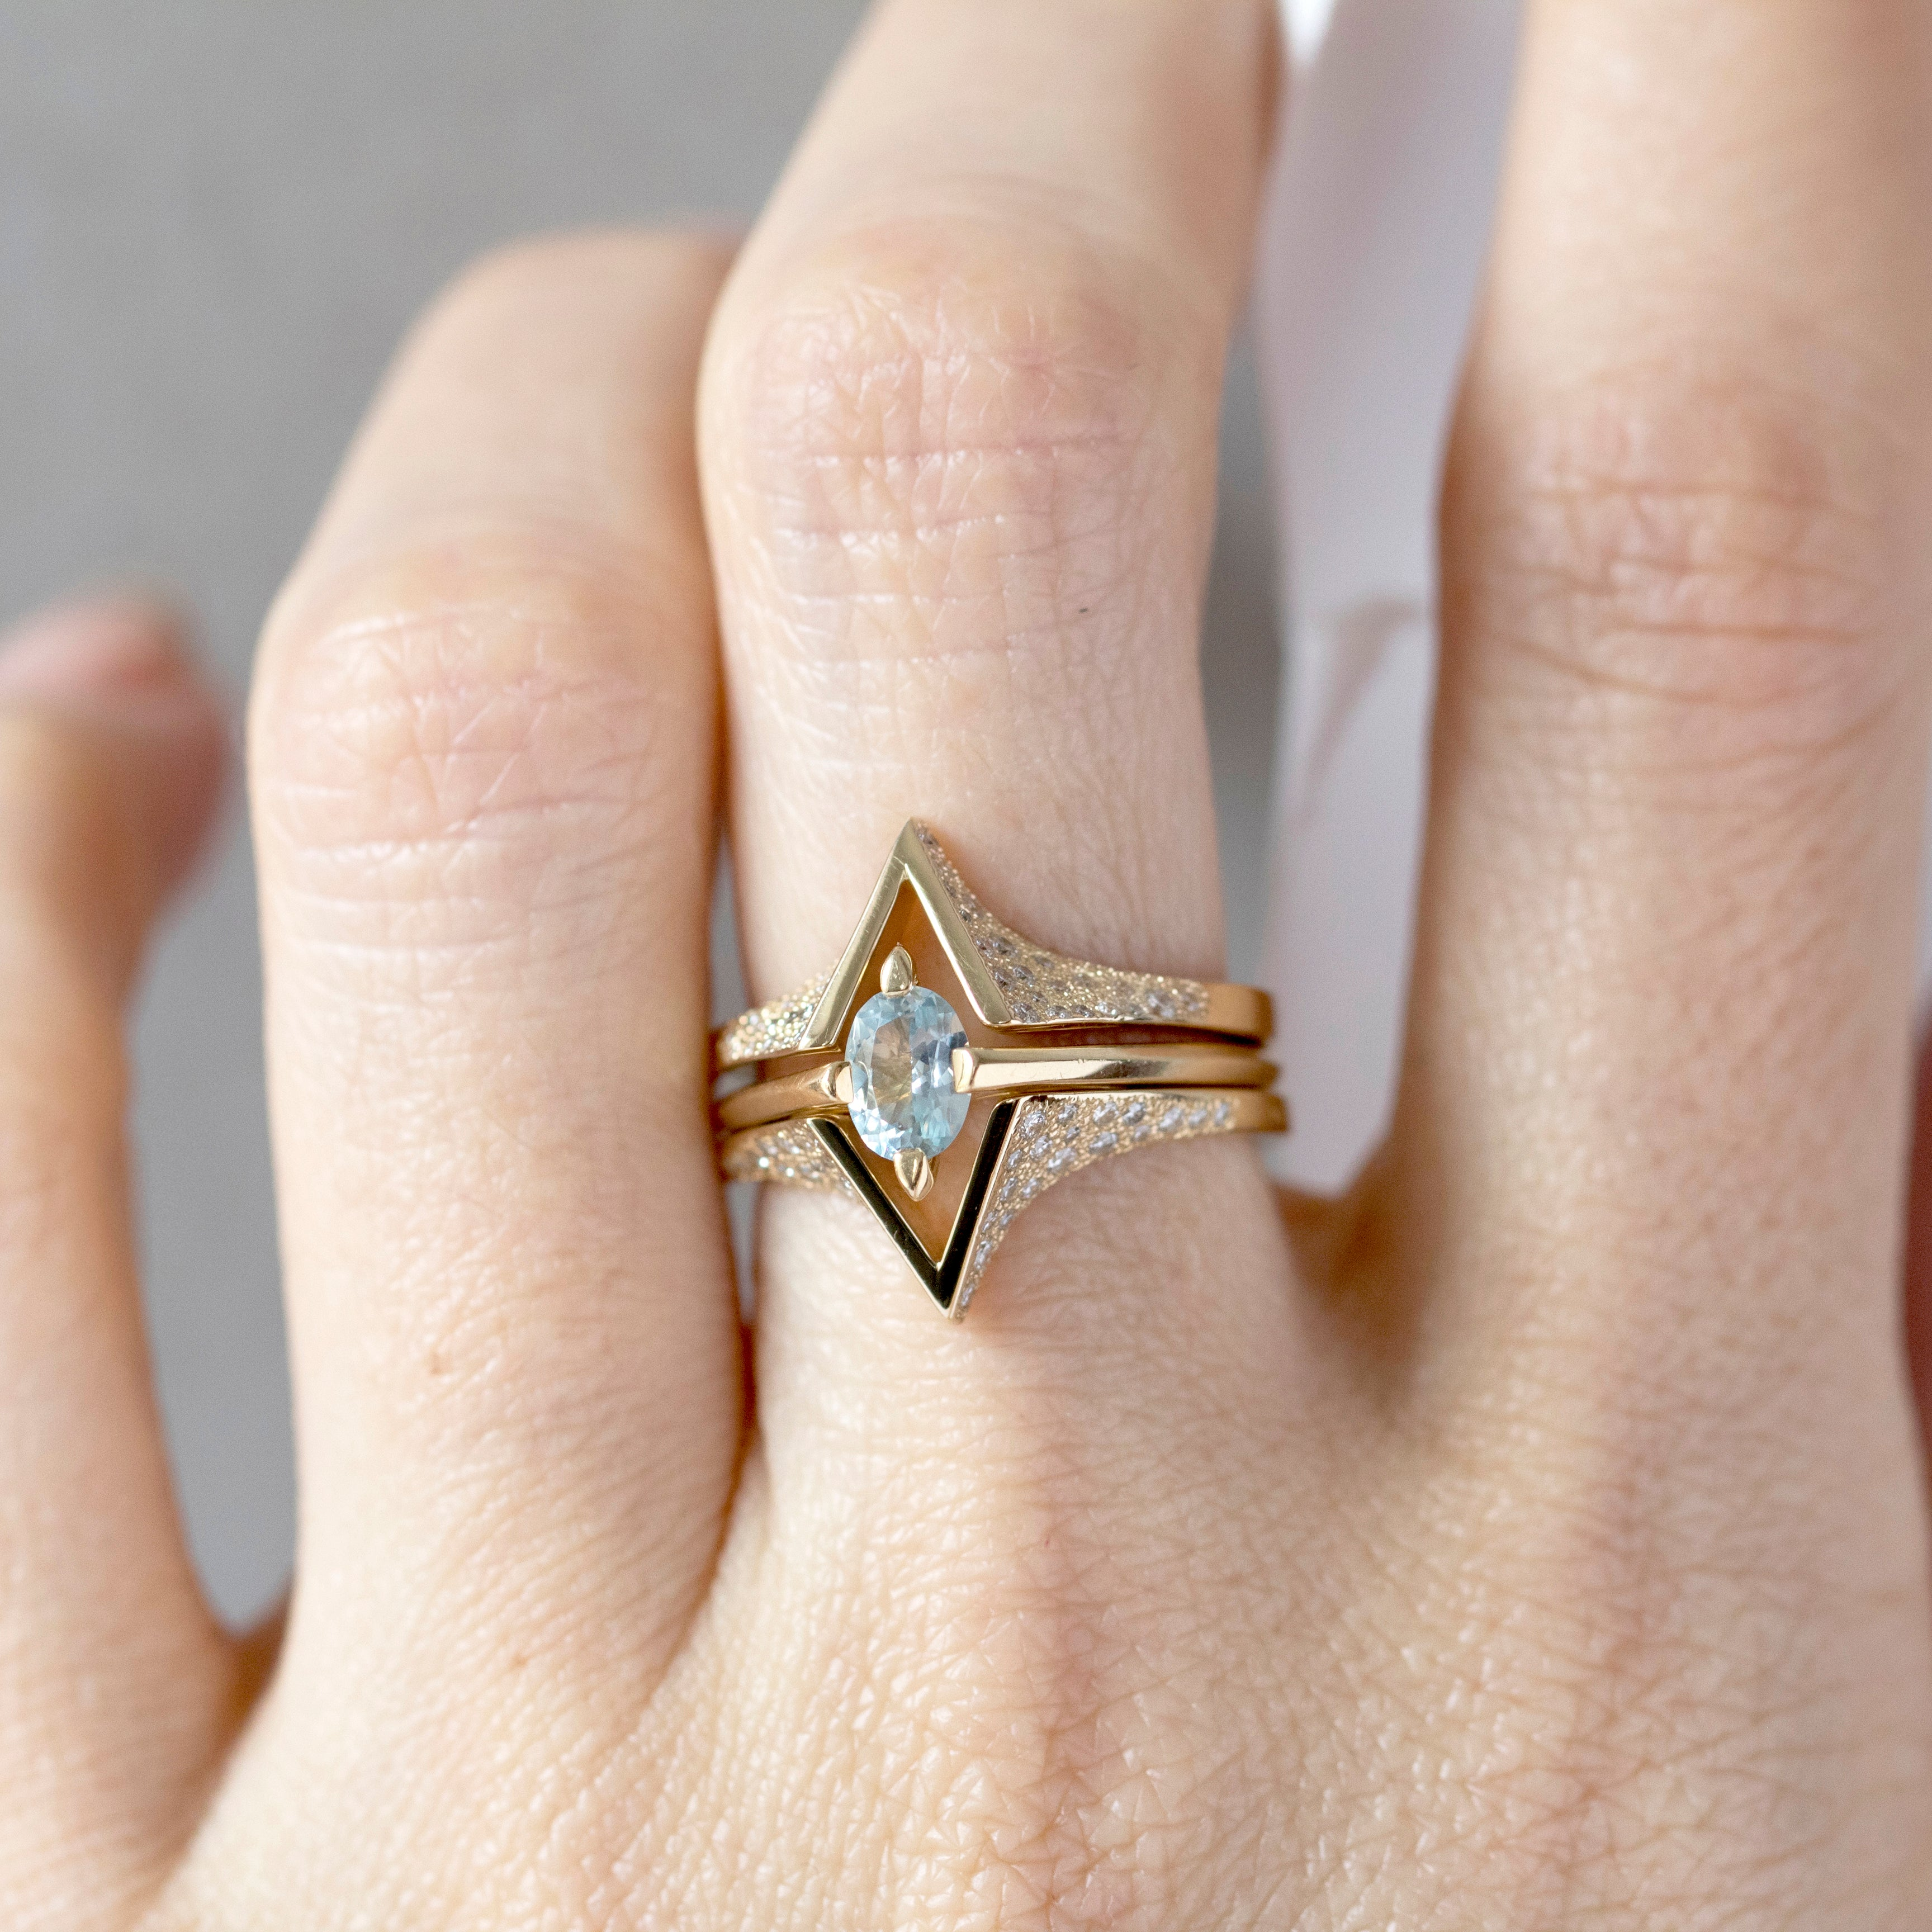 Minimalist Arc + Spire Pave Enclose Ring Set